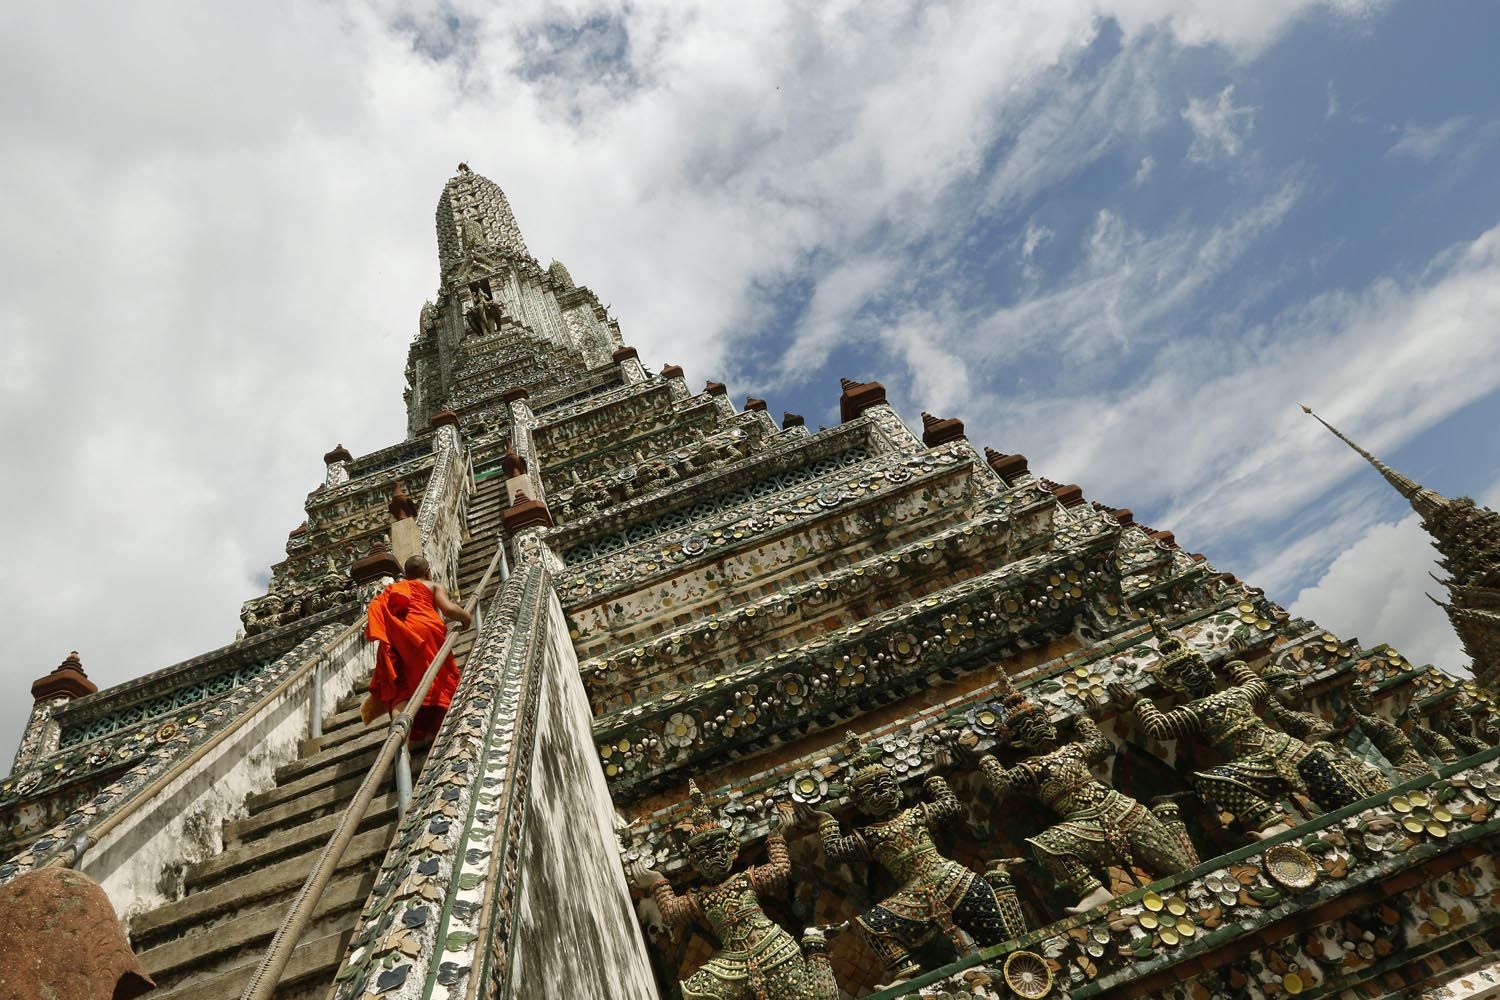 Sept. 24, 2013. A Thai Buddhist novice walks up to the top of the ancient pagoda at Wat Arun or the 'Temple of Dawn' in Bangkok, Thailand.